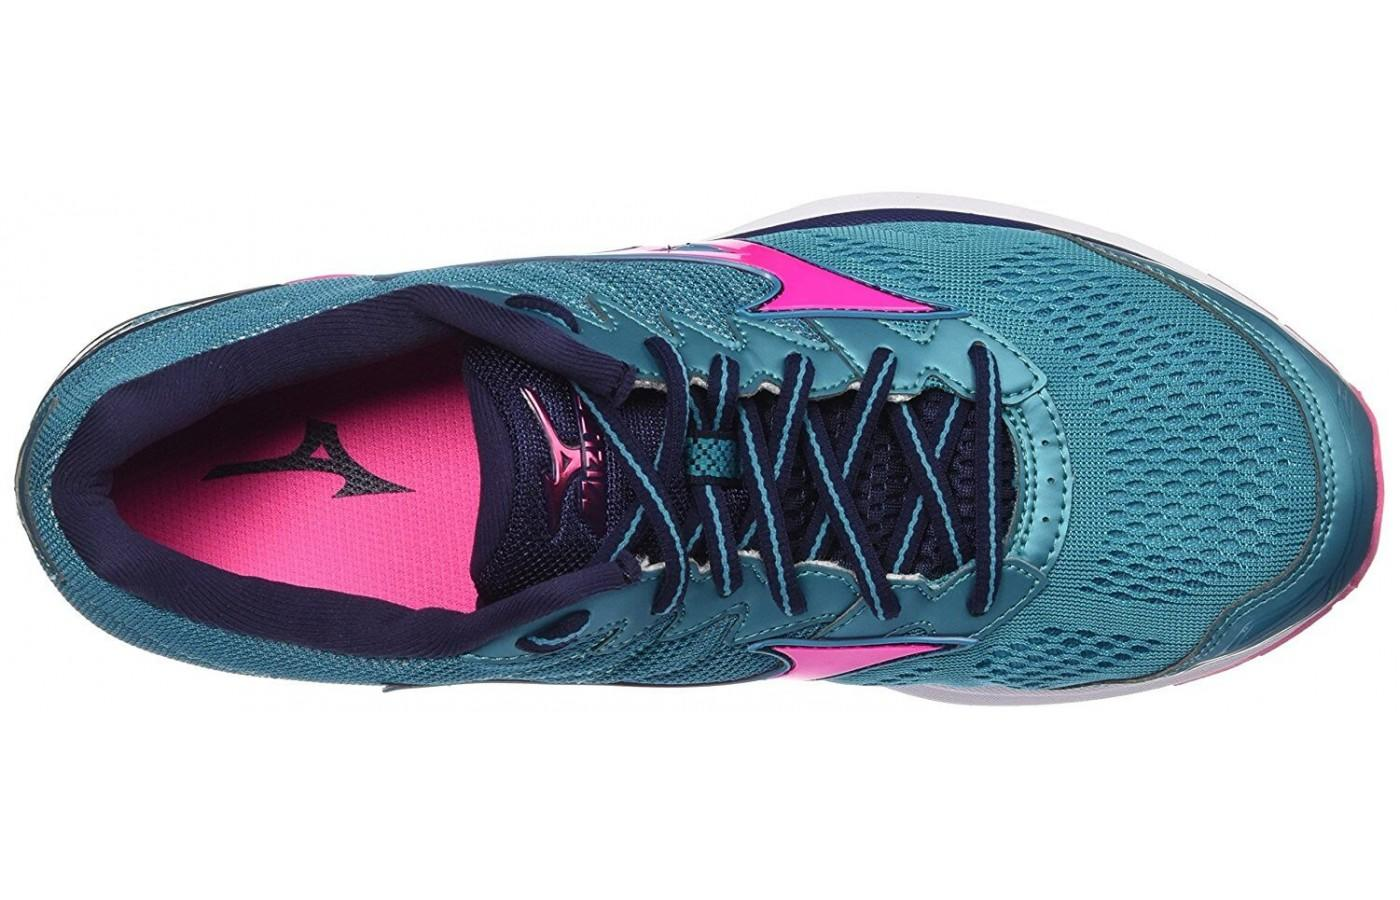 The Mizuno Wave Rider 20 offers a snug, narrow fit